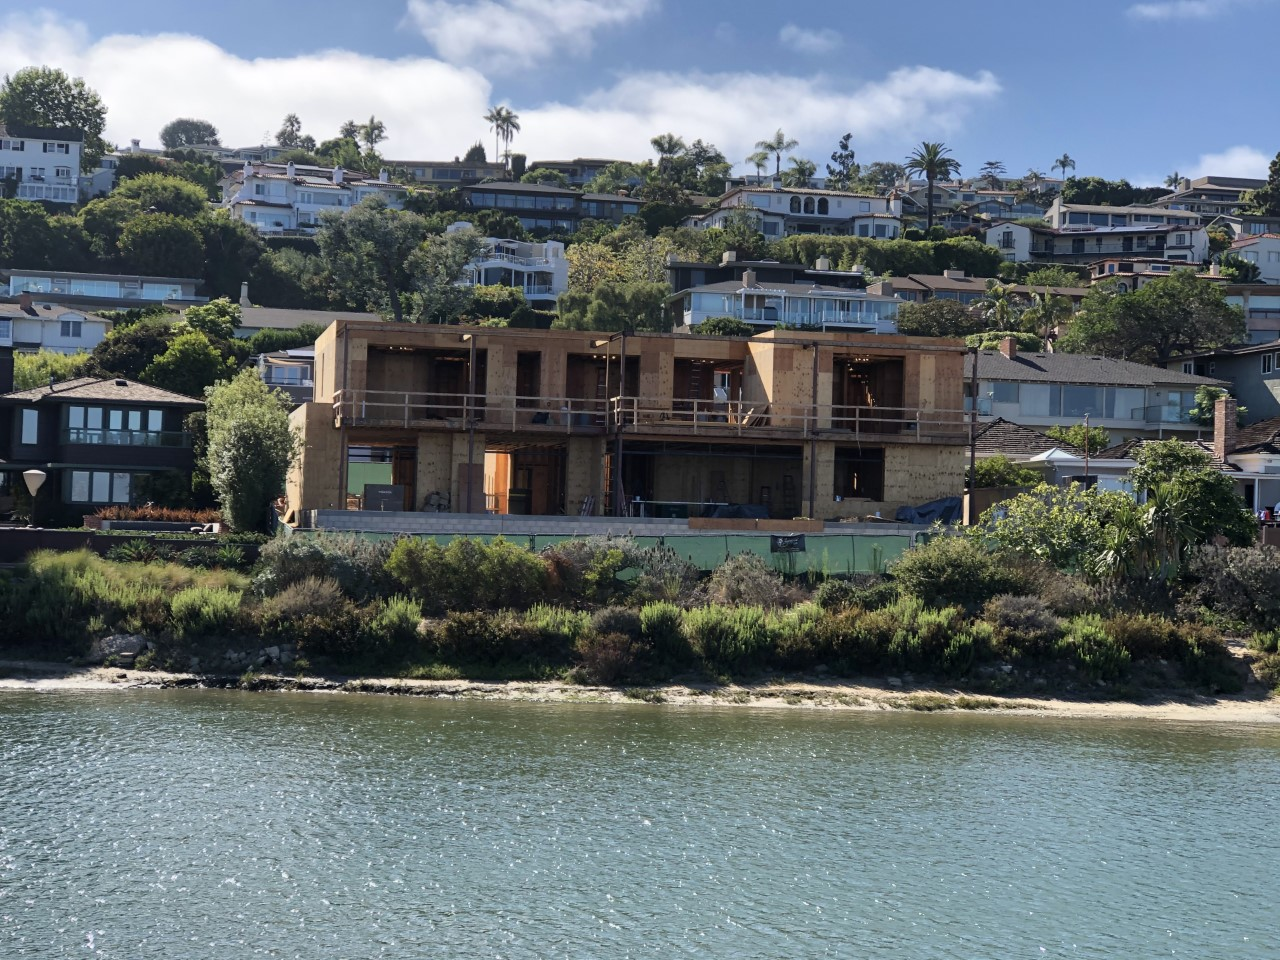 Custom Framing at Point Loma Beach House-point-loma-beach-house-framing-acevedo.jpg